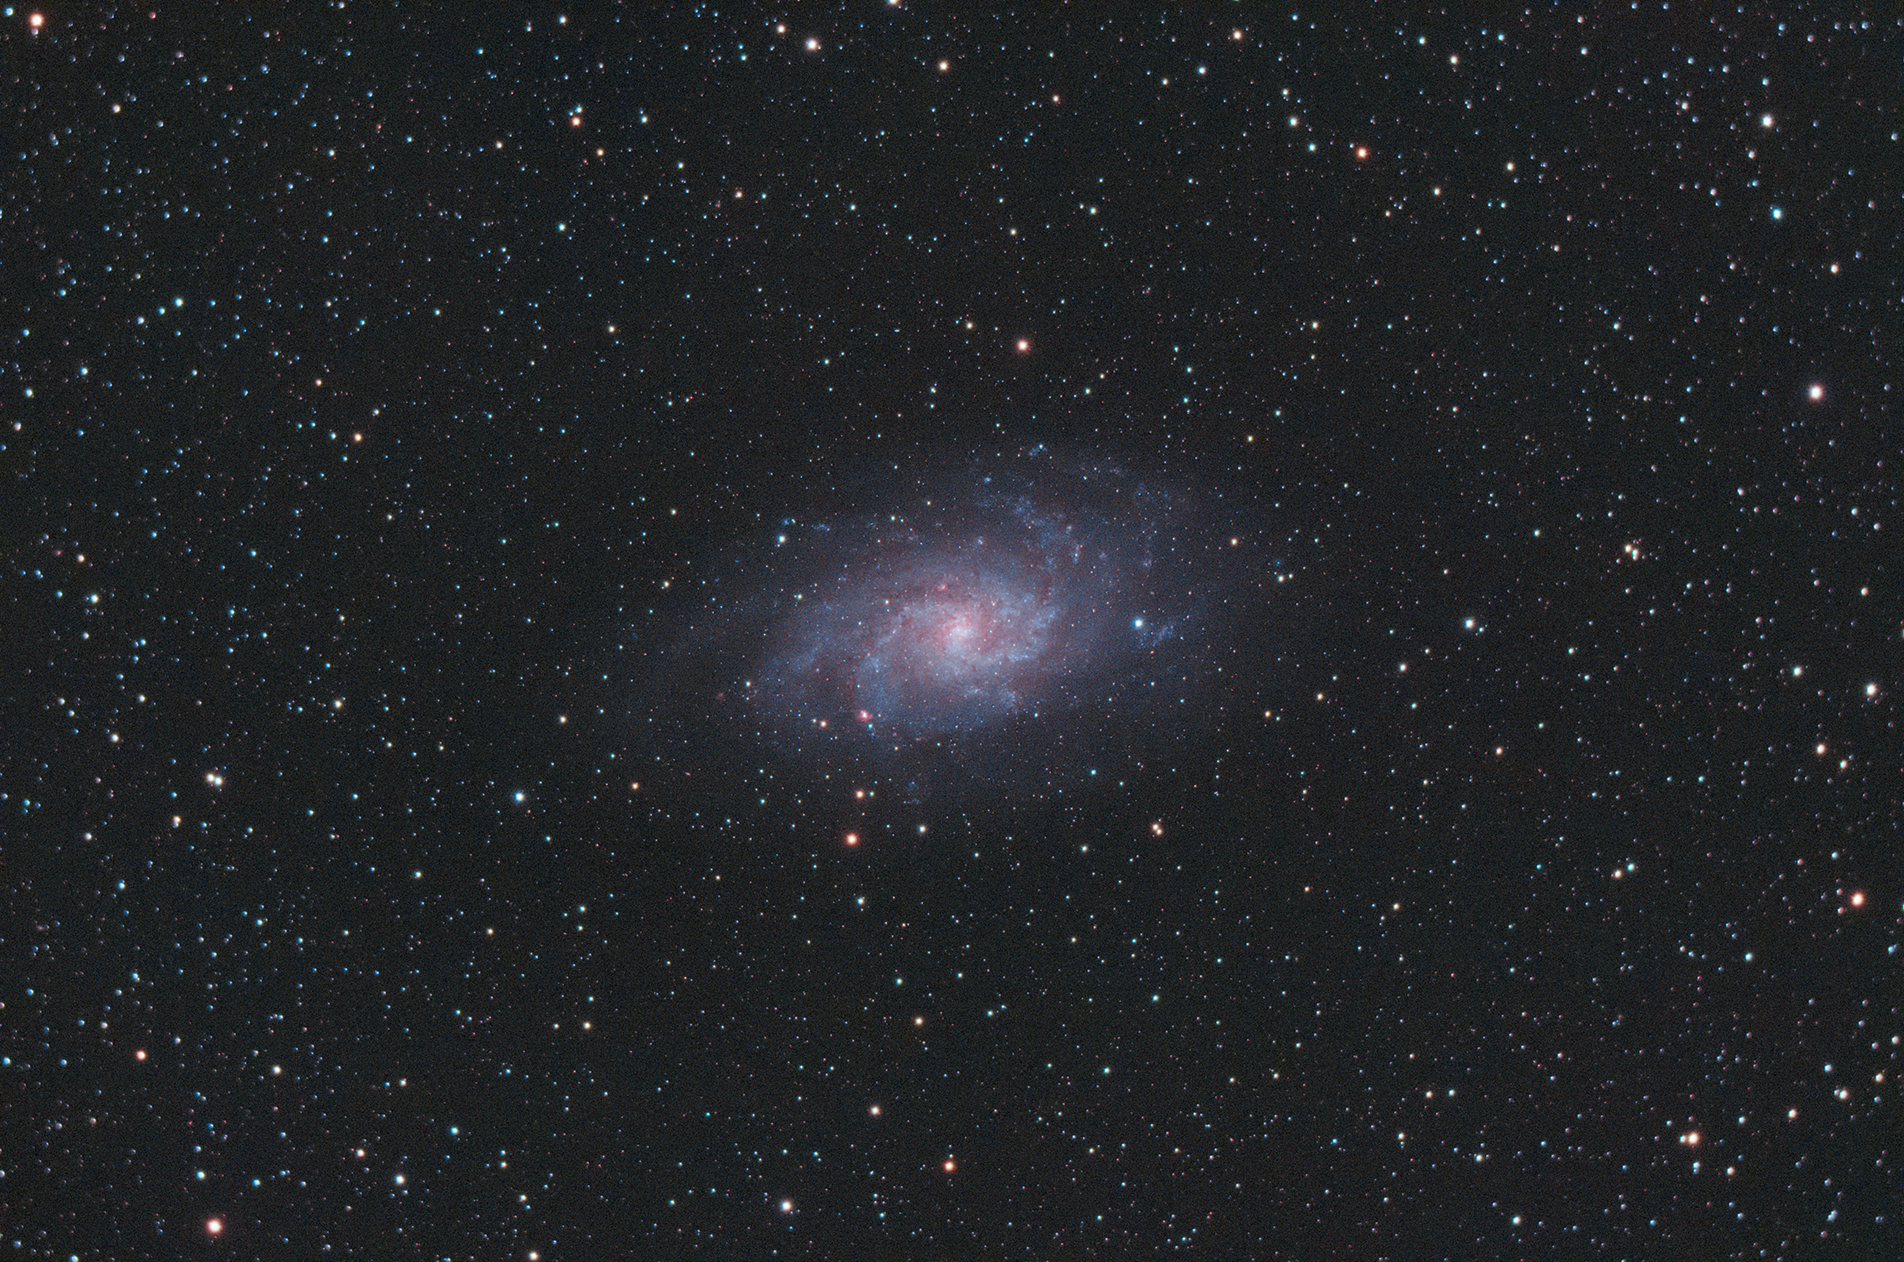 The Trianglum Galaxy